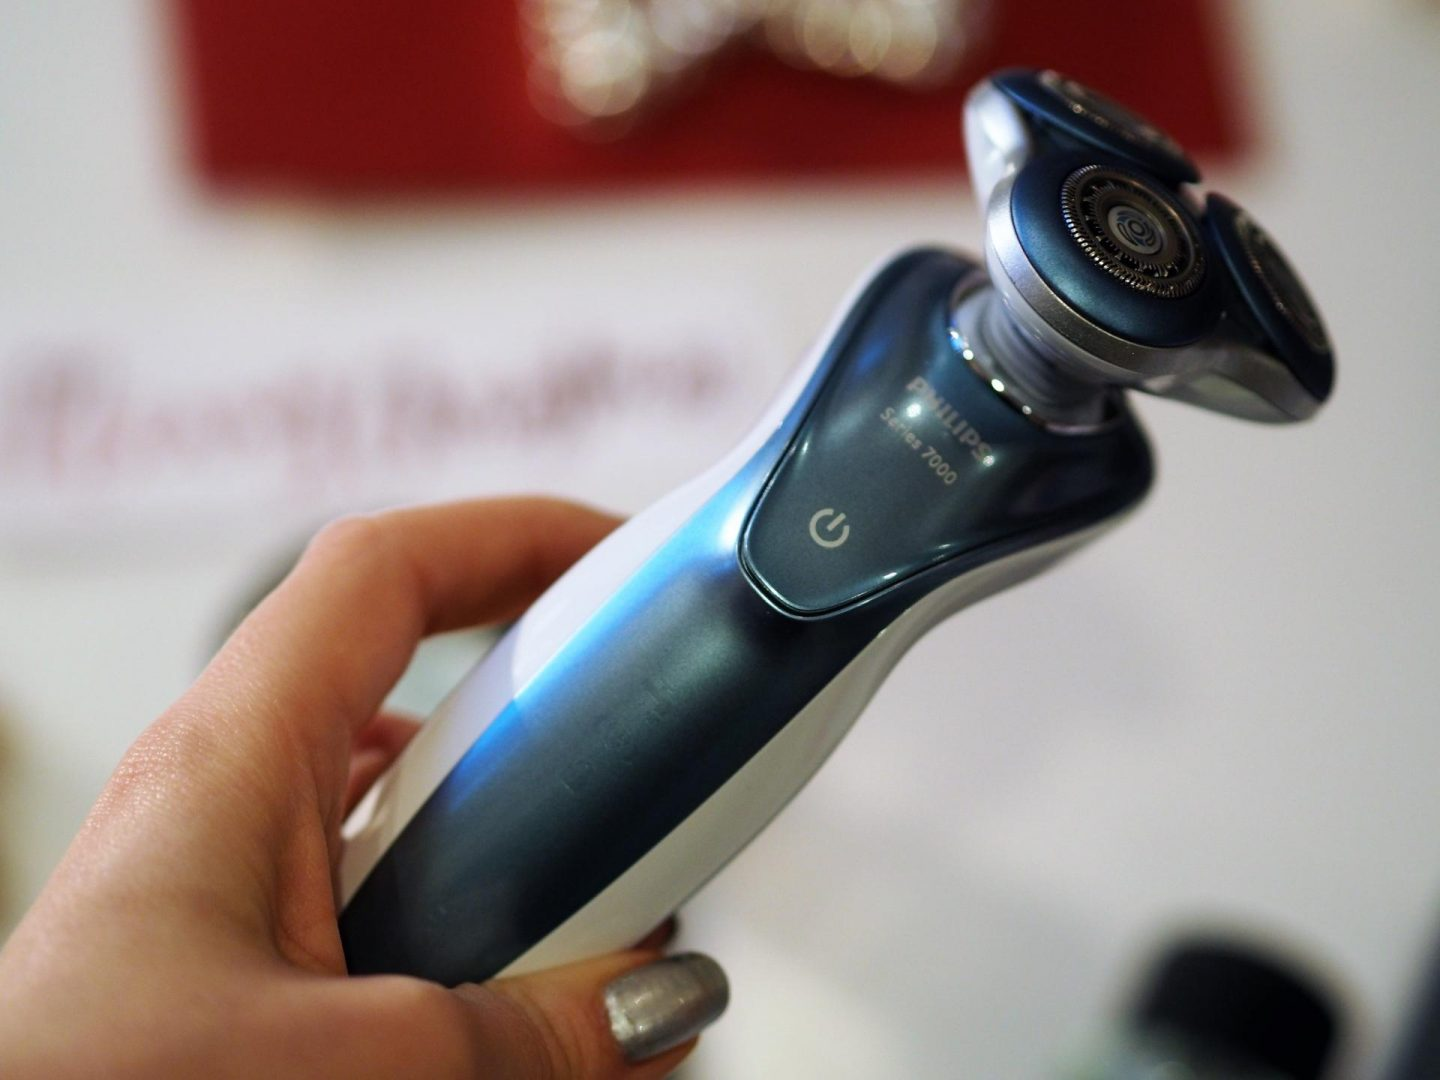 Philips Wet/Dry Shaver Series 7000 and Christmas Gift Guide for Him